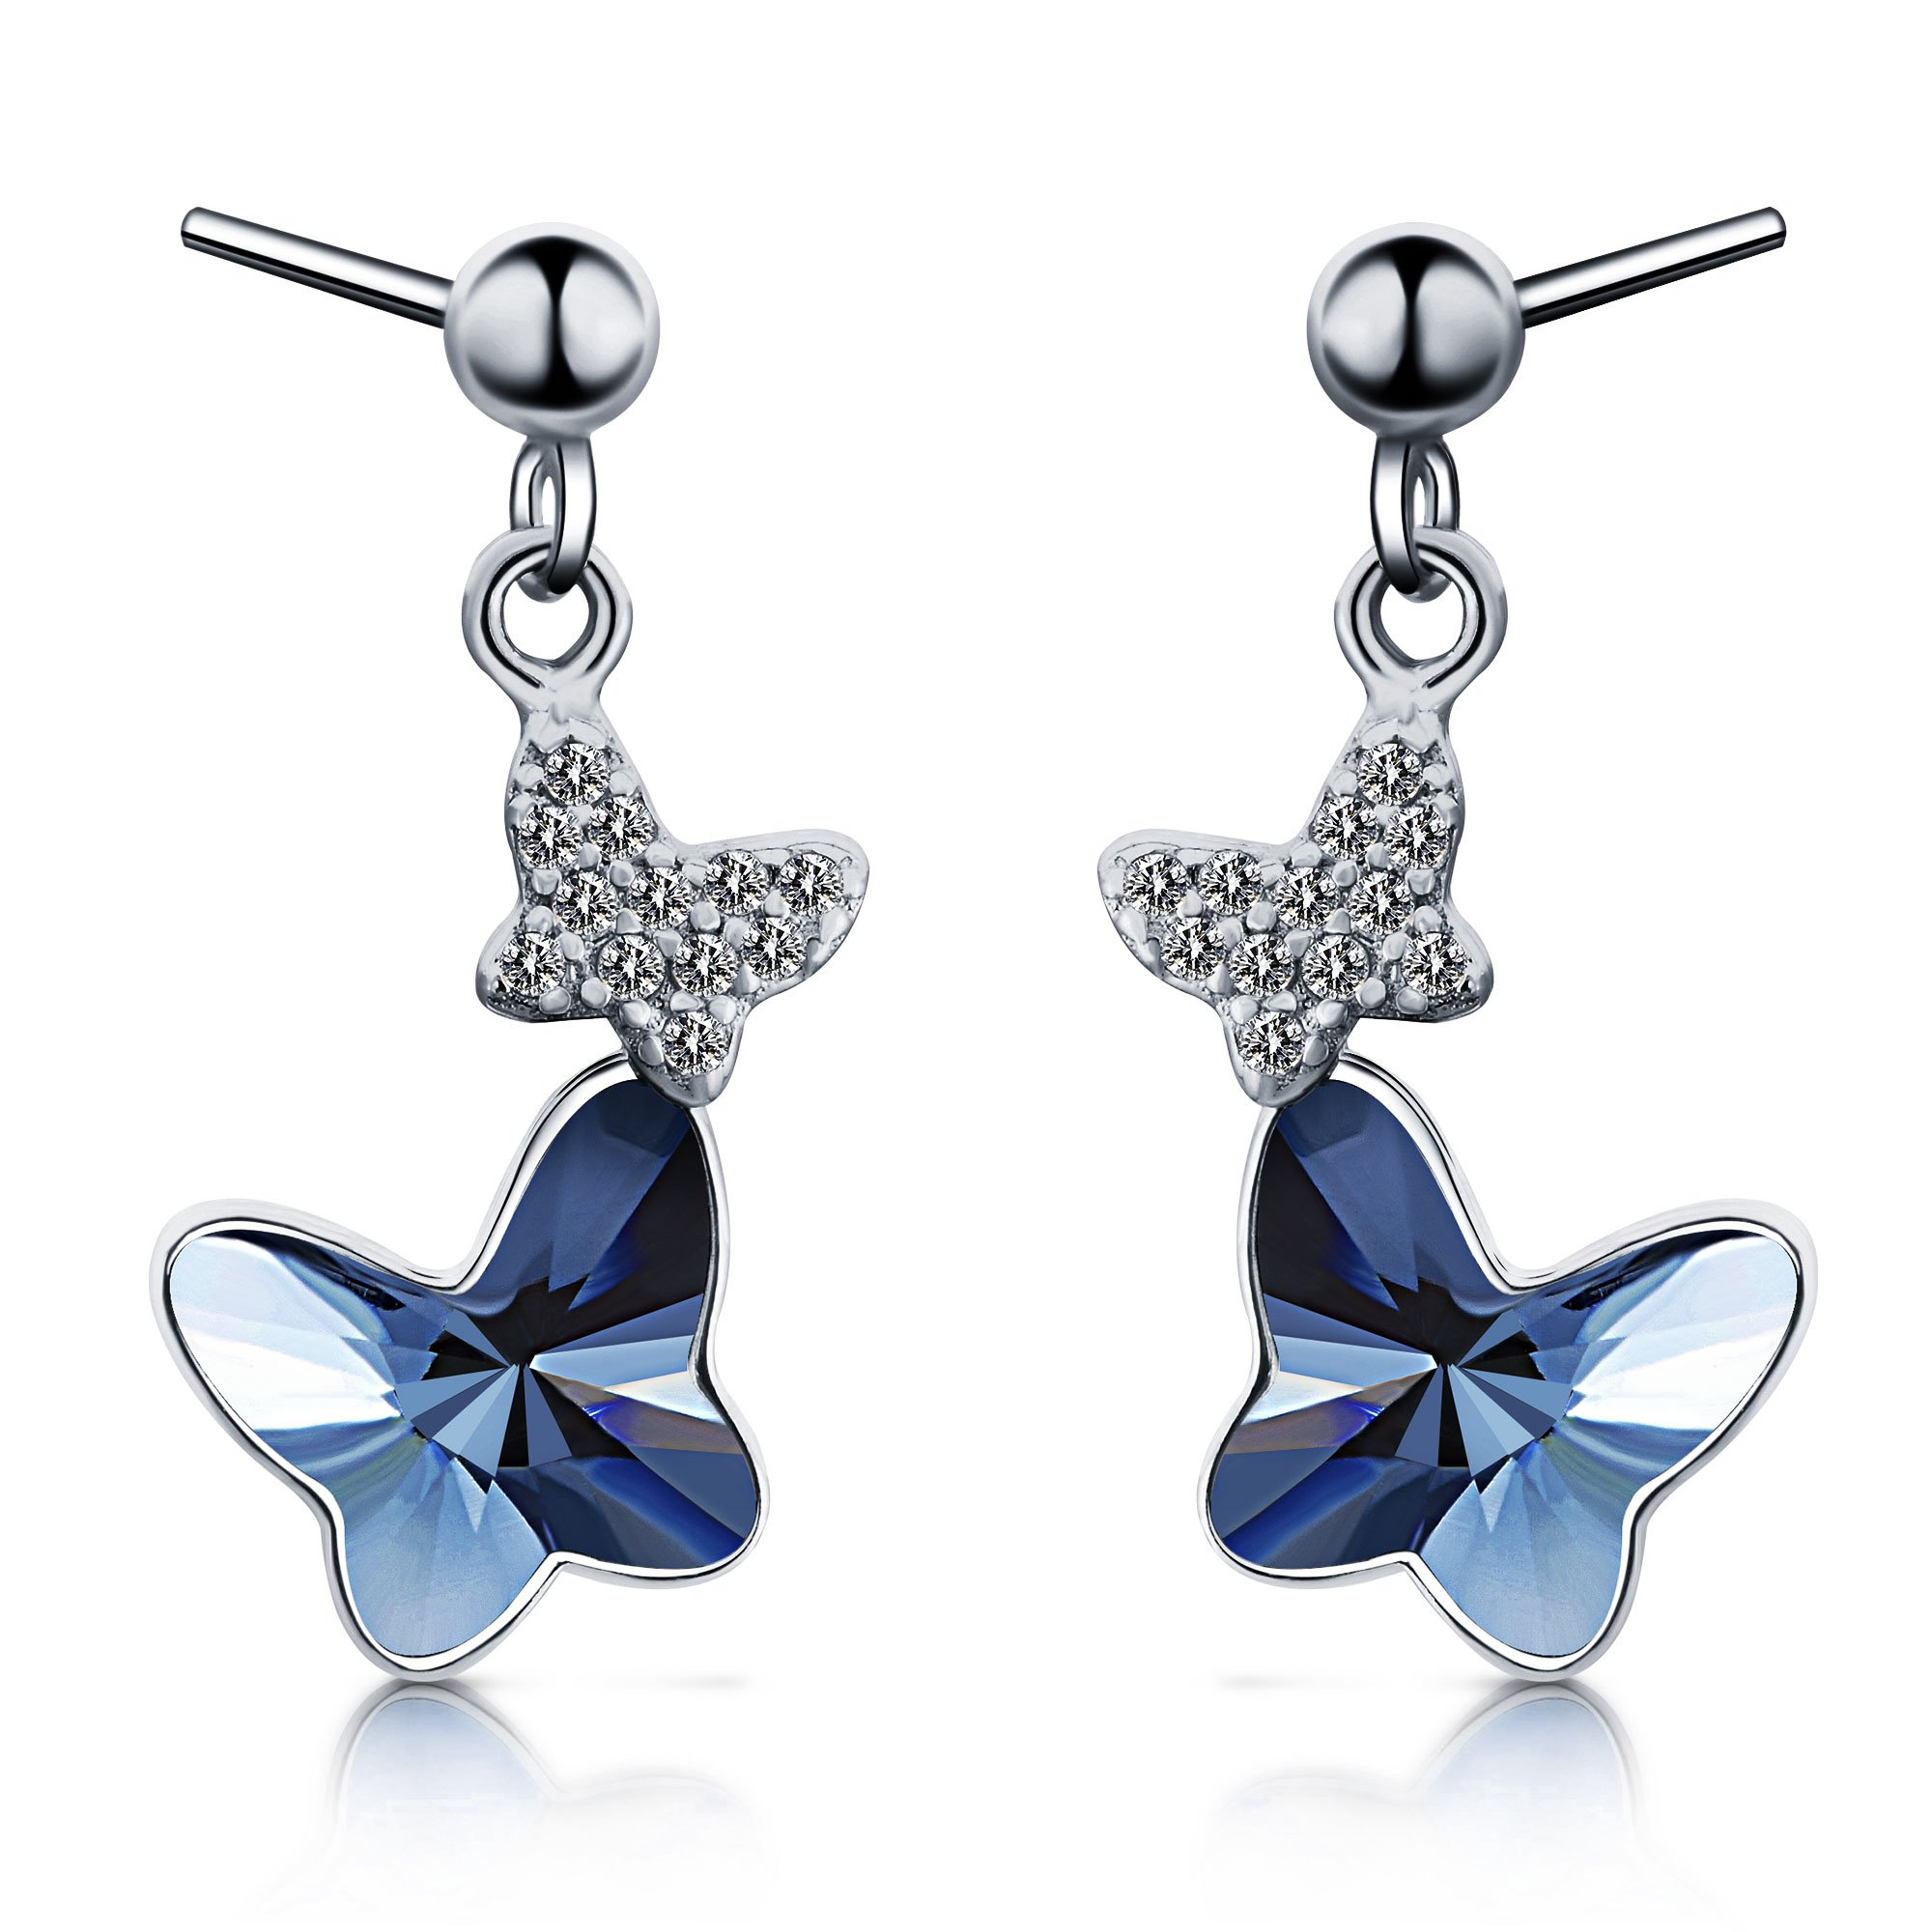 Sterling Silver Blue Butterfly Earrings, T400 Drop Stud Earrings Made with Swarovski Element Crystals Gift